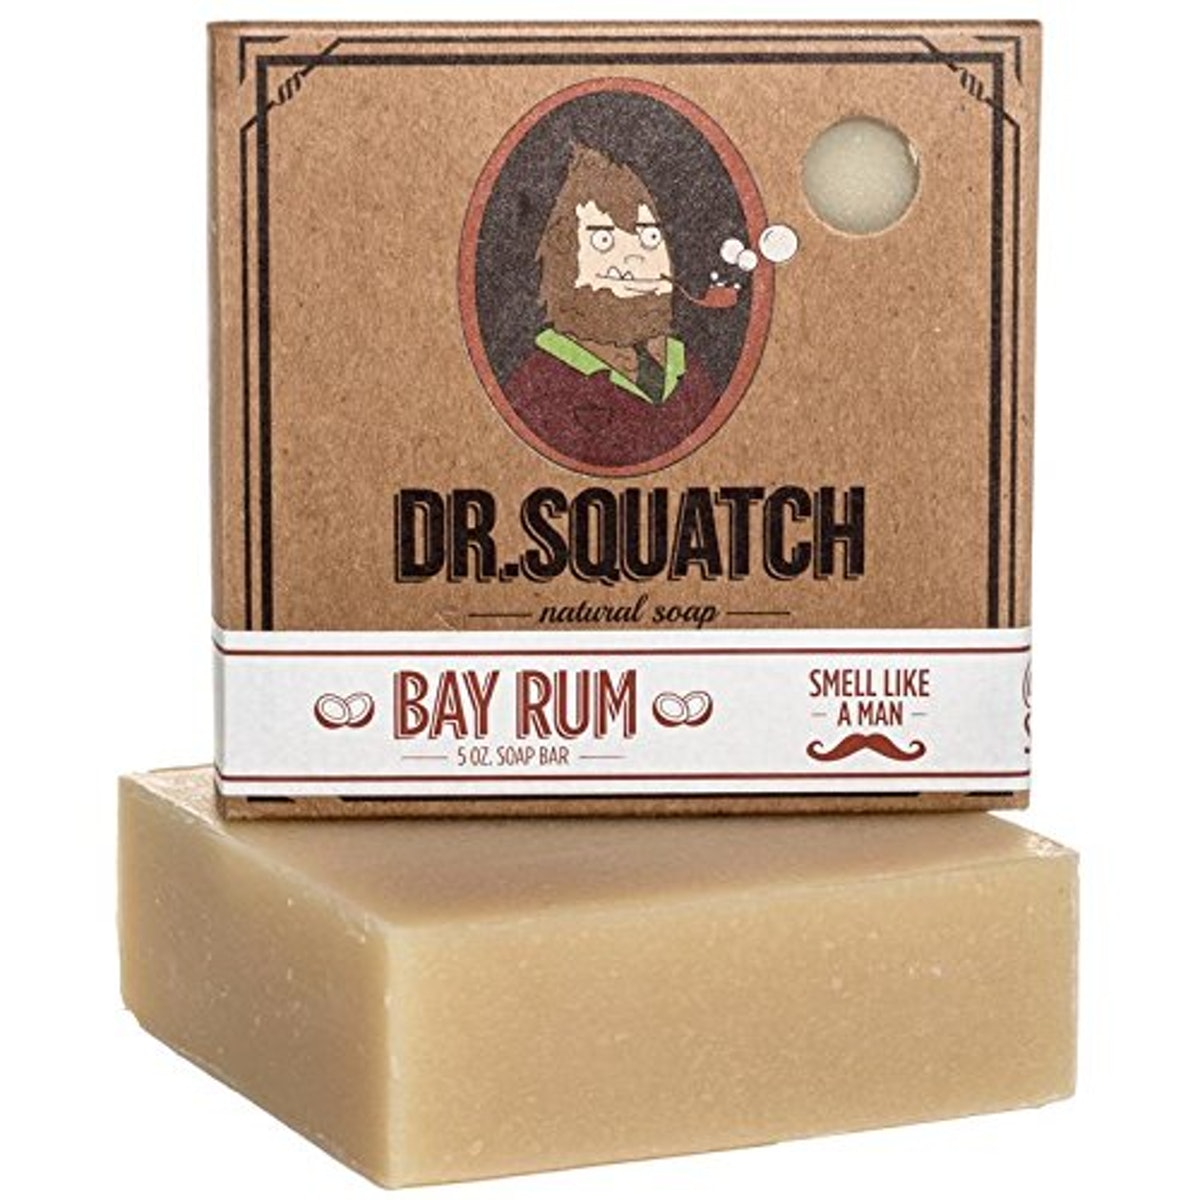 Bay Rum Soap by Dr. Squatch